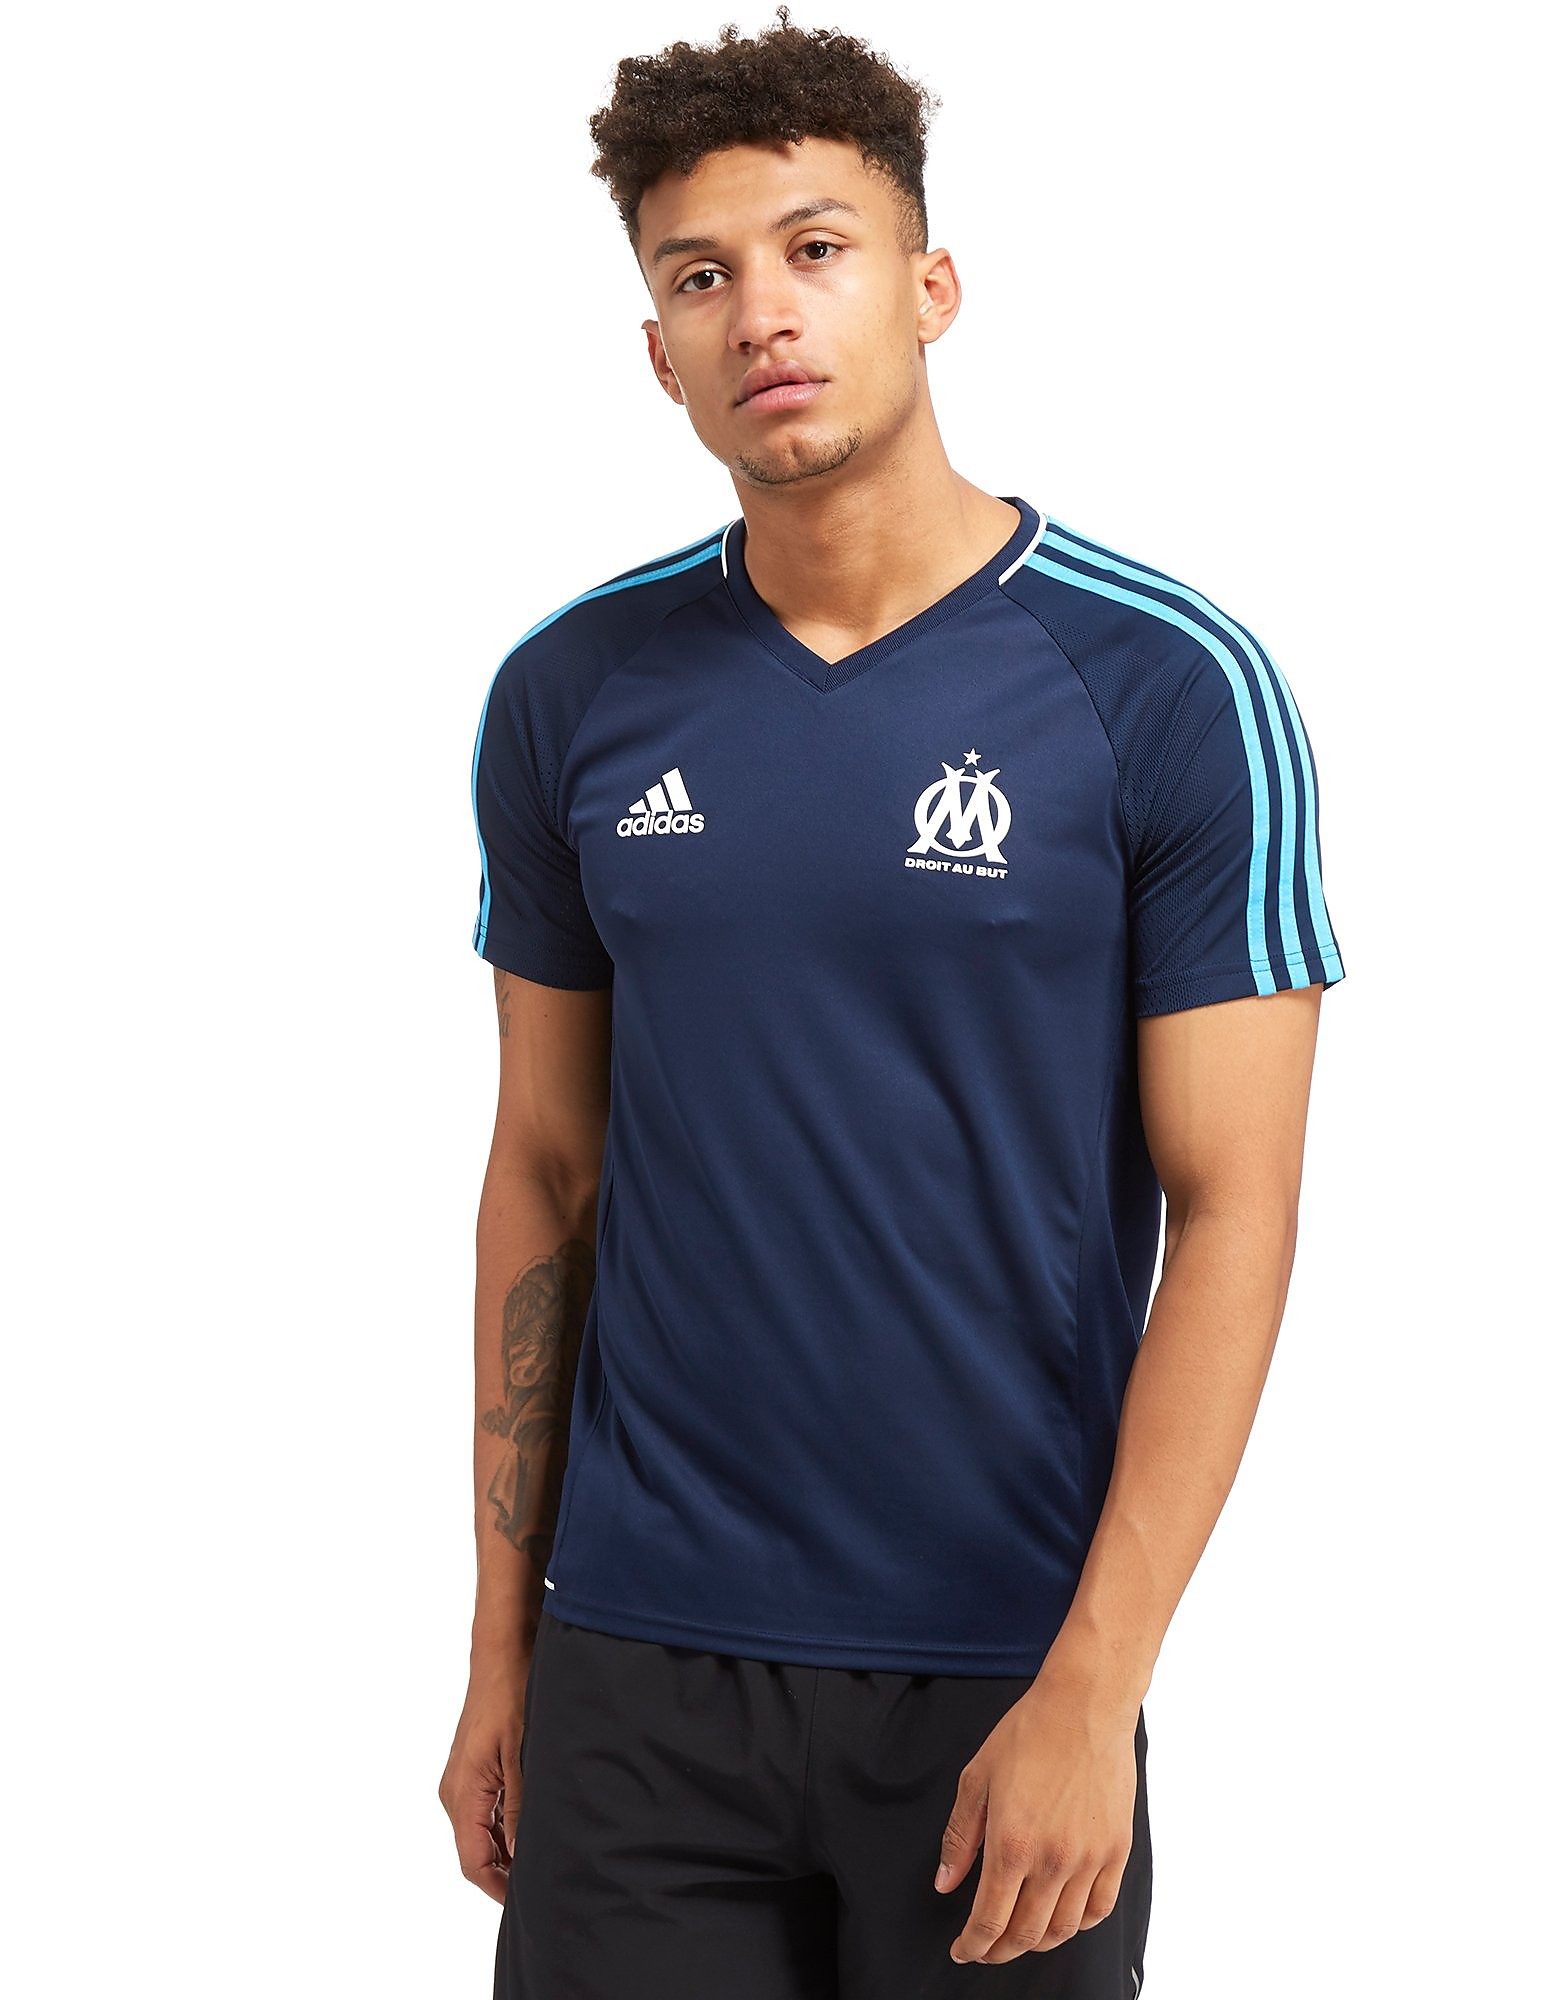 adidas Olympique Marseille 2016/17 Training Shirt